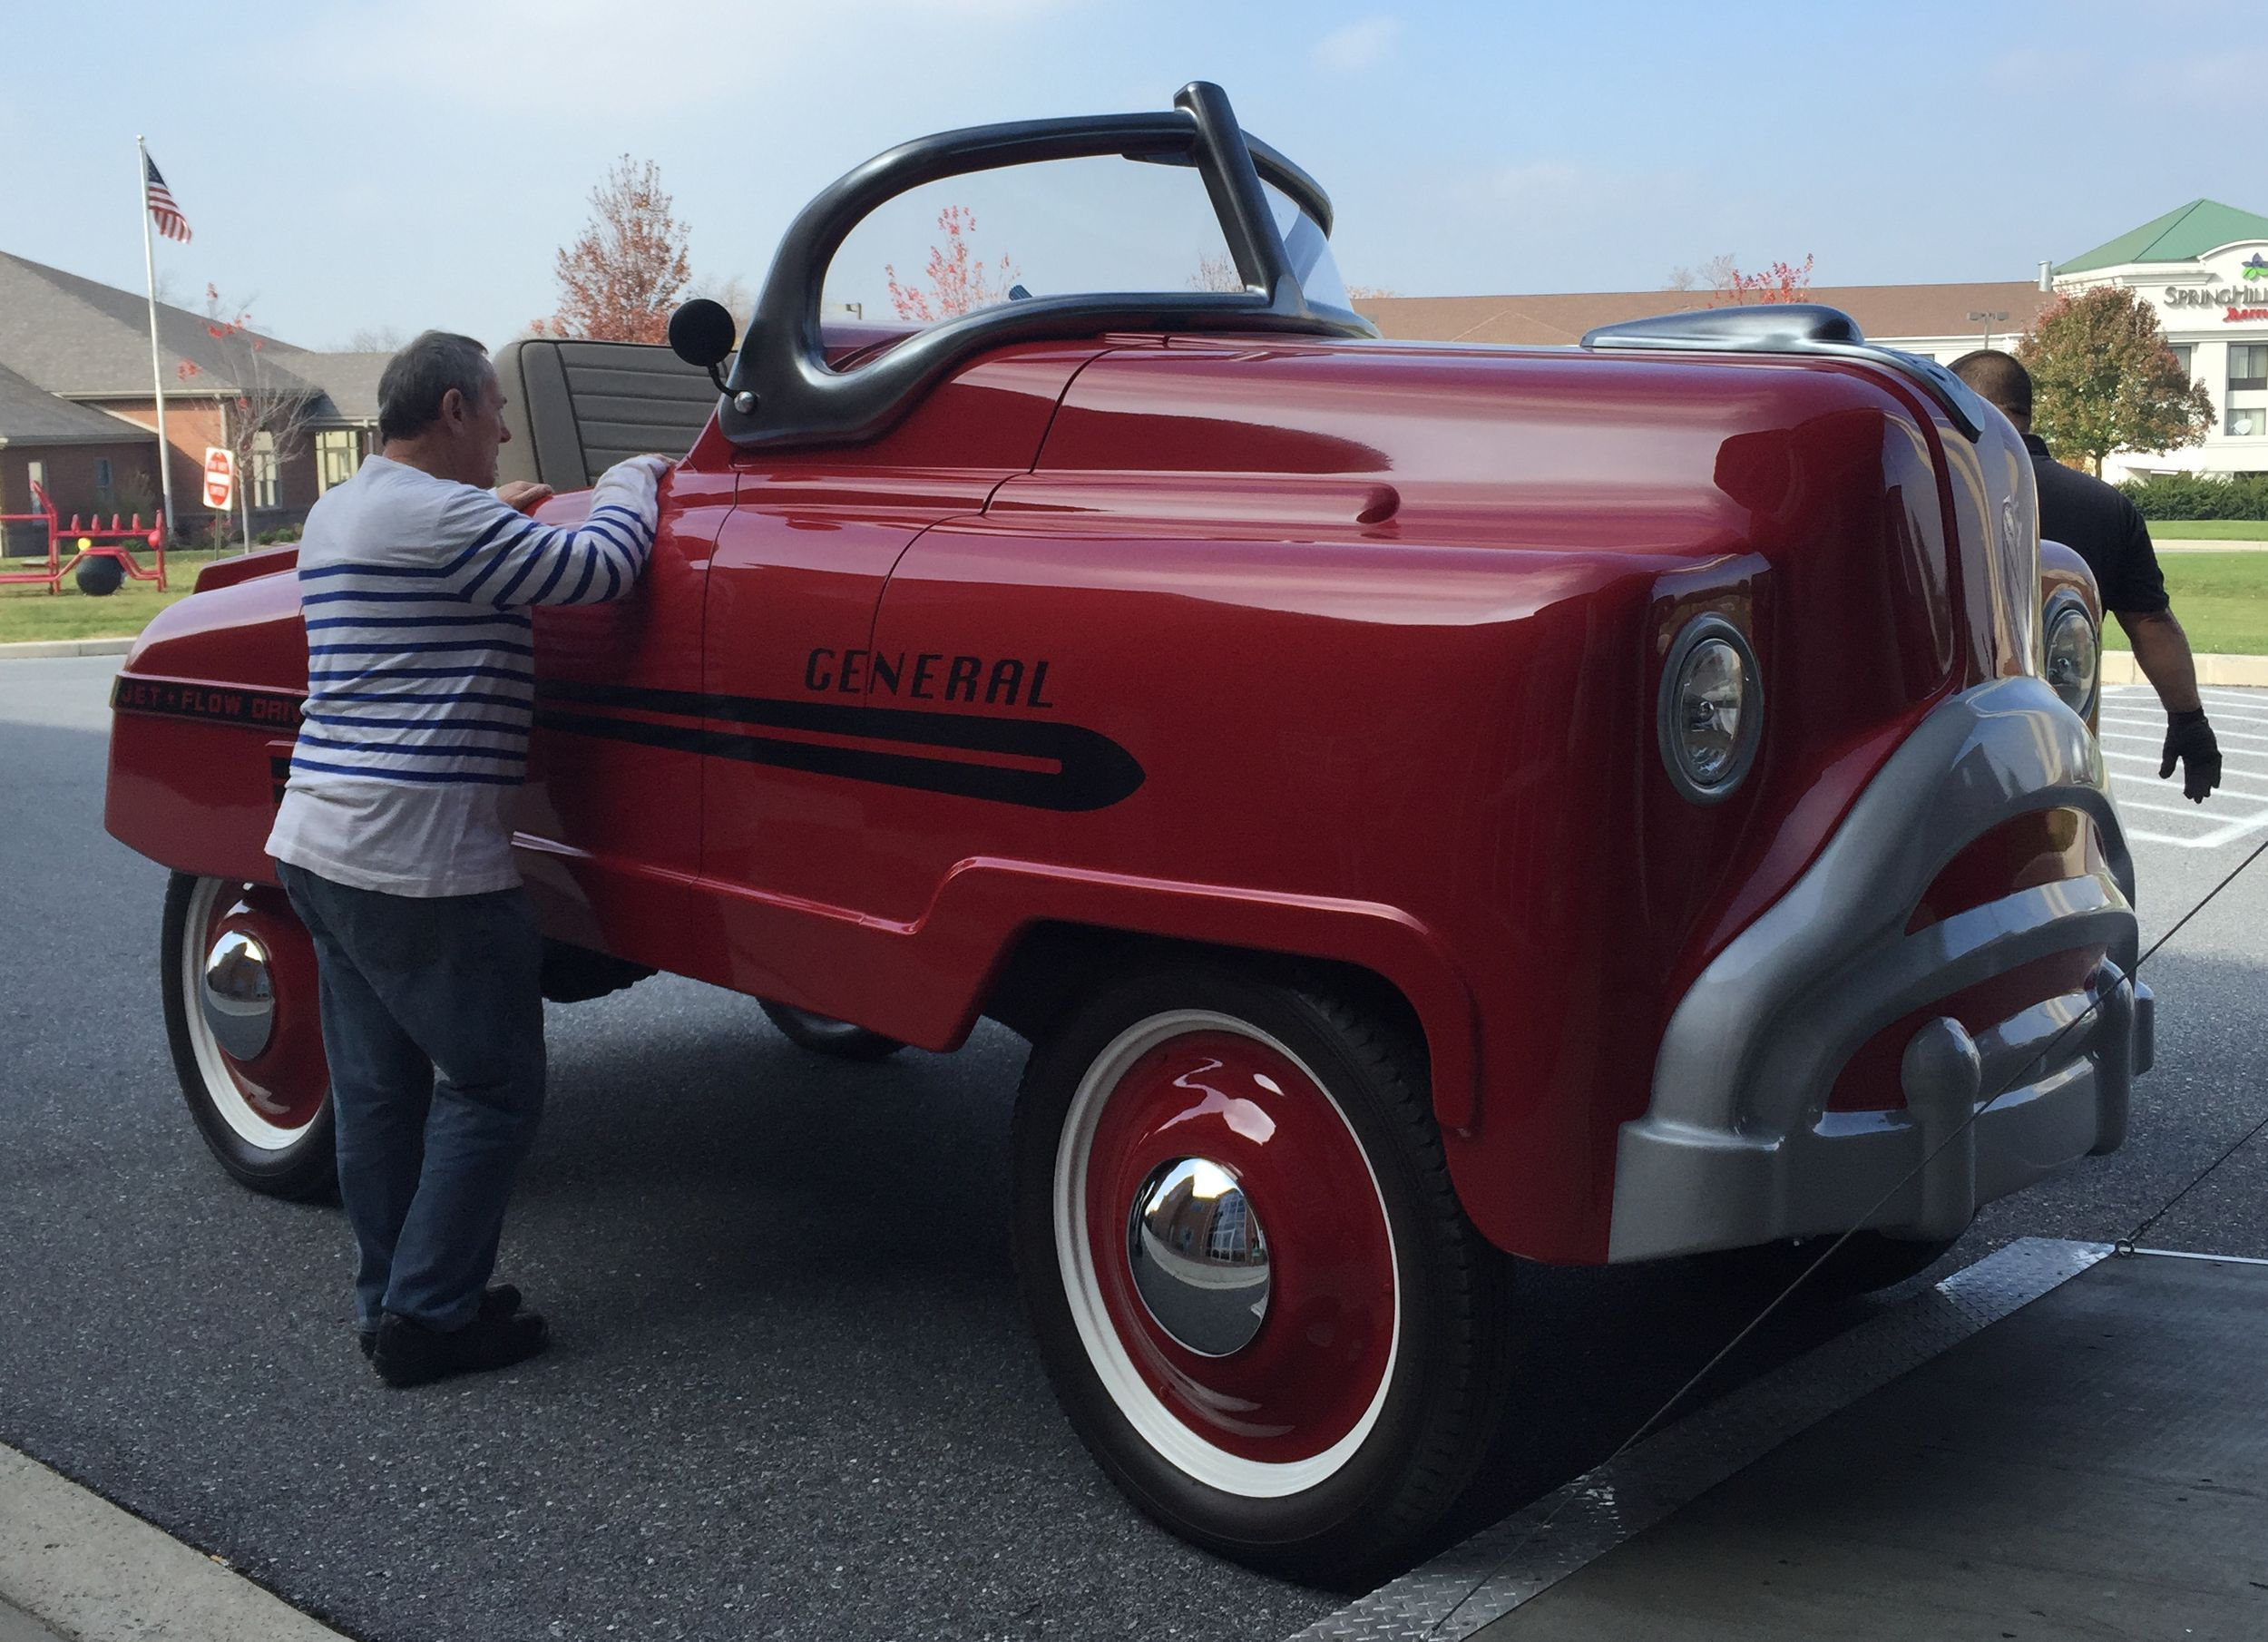 A life-size (and then some) Murray General pedal car | Pedal car ...